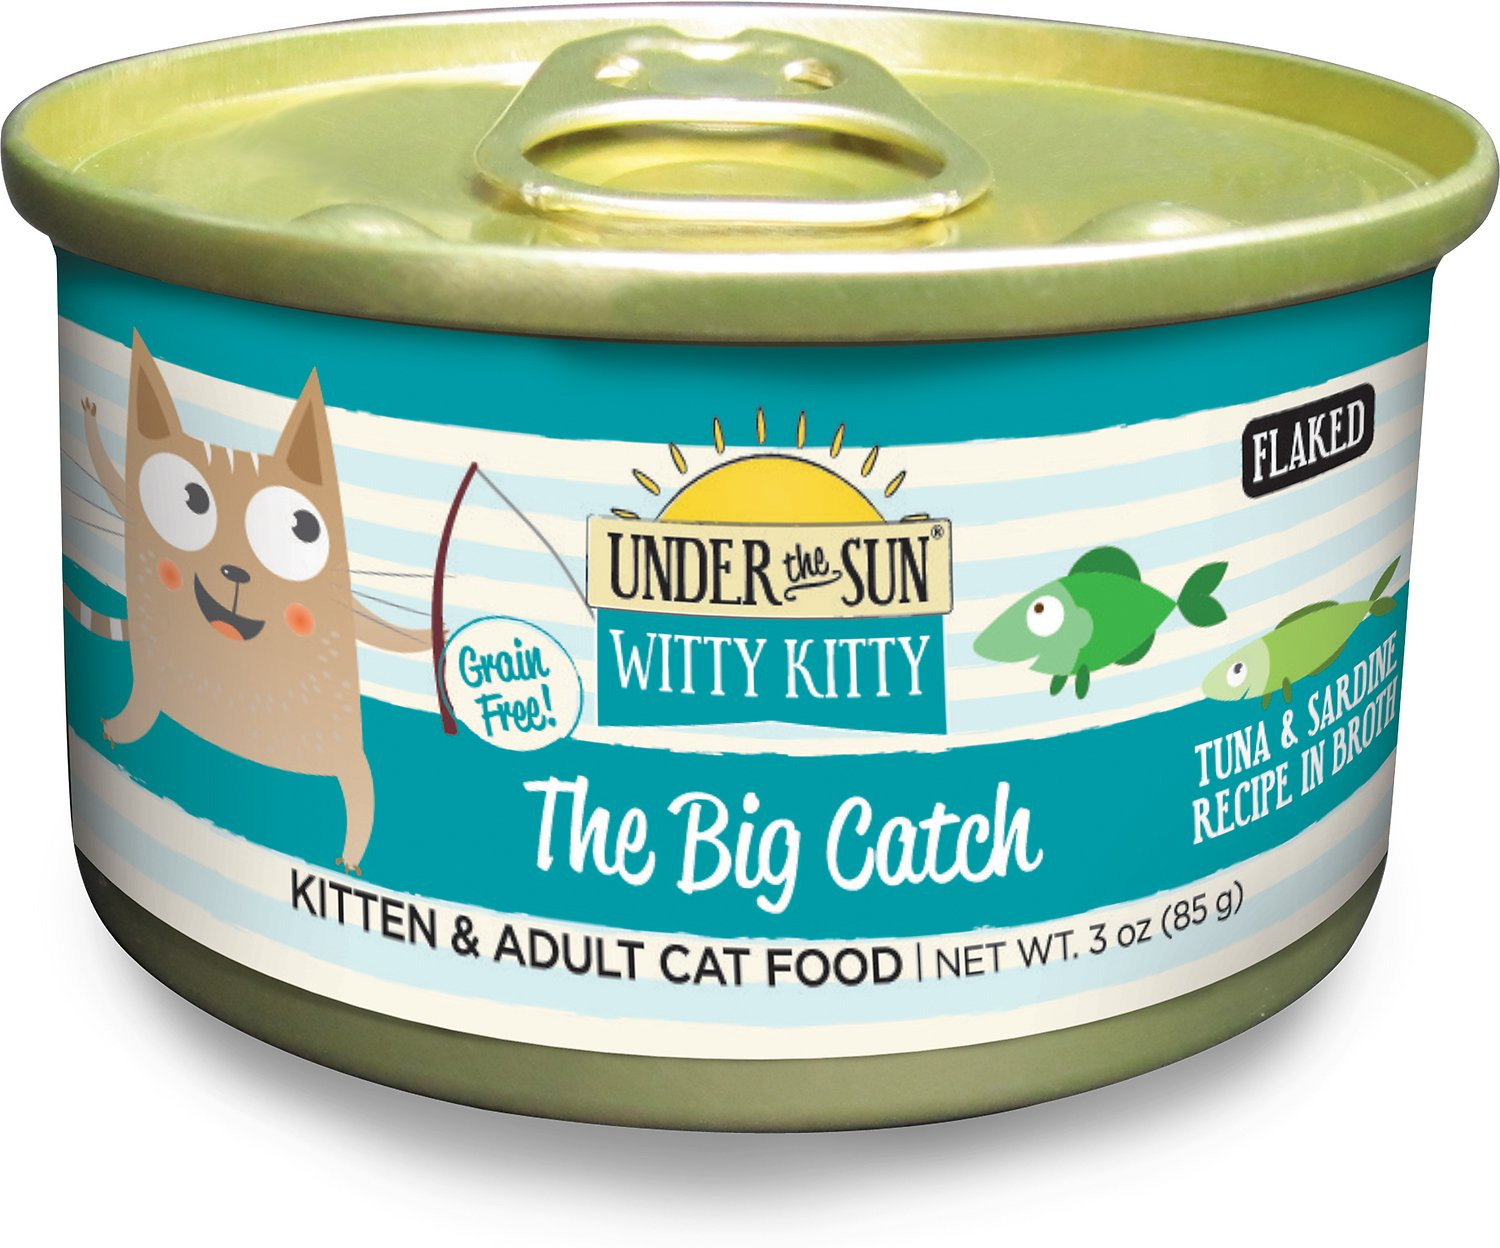 Under the Sun Witty Kitty Grain-Free The Big Catch Tuna & Sardine Recipe Canned Cat Food, 3-oz